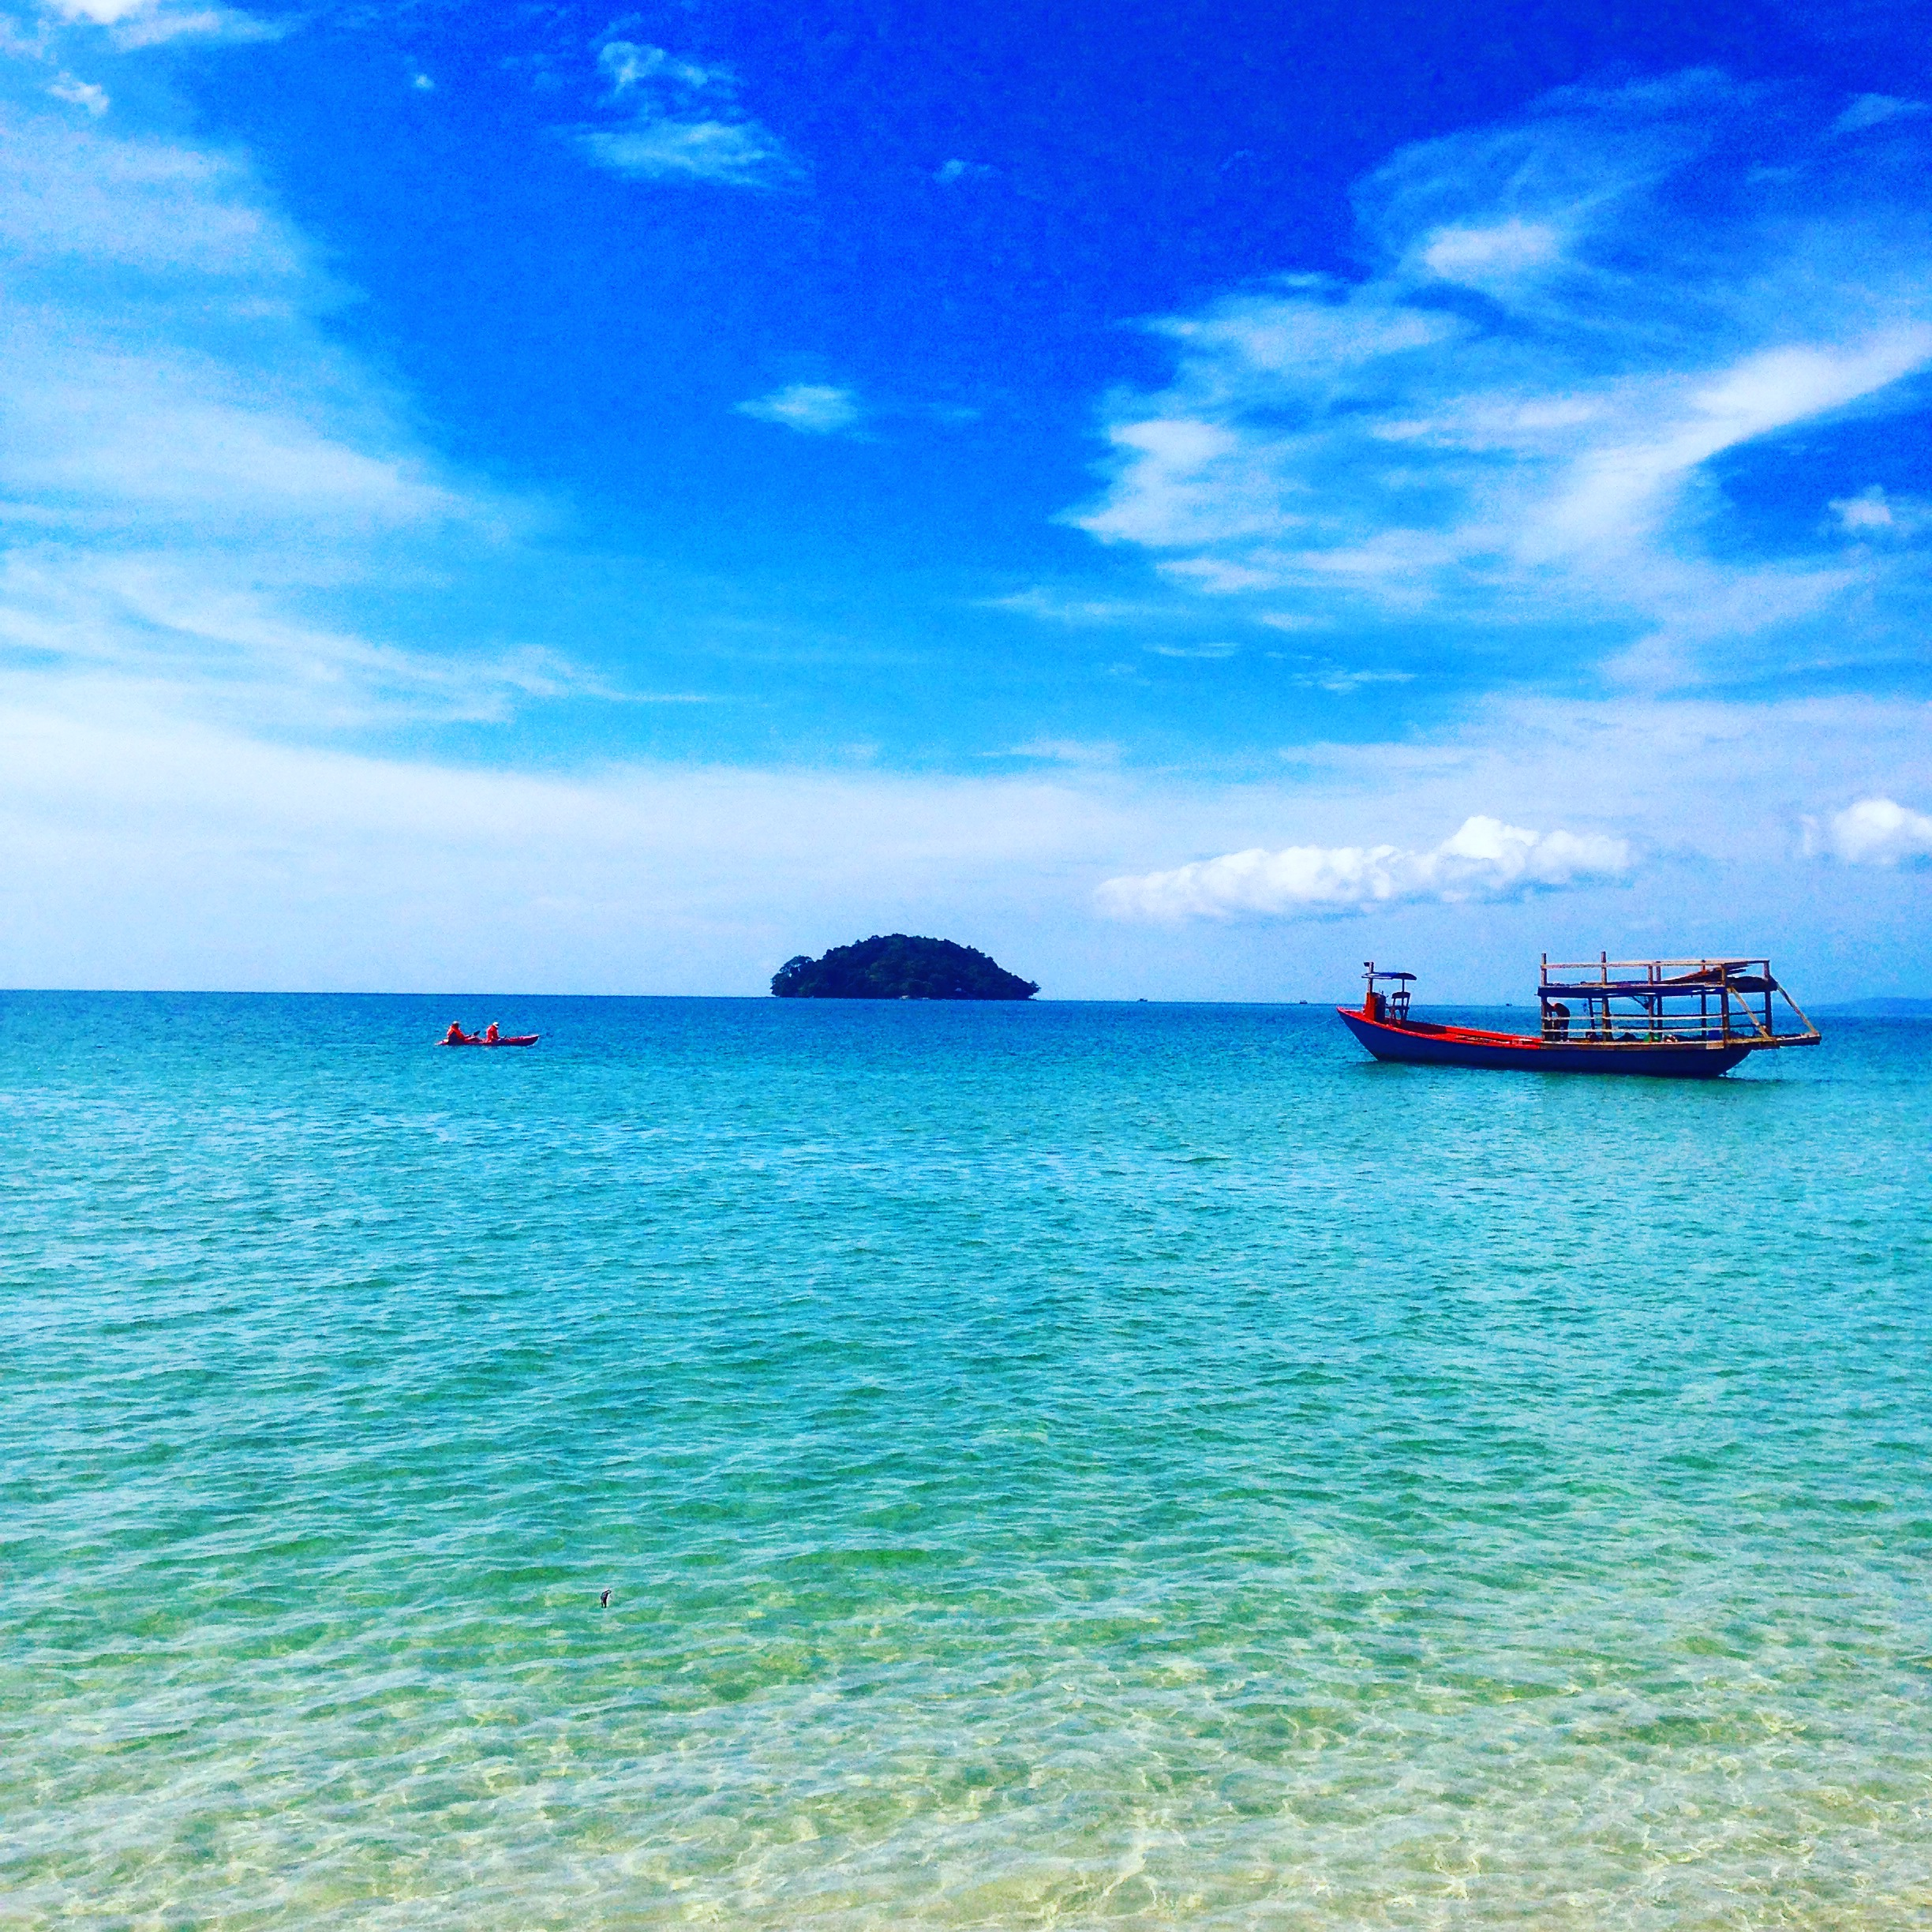 Sihanoukville Otres Beach 1 and 2 Cambodia: A Party Hardy Beach Heaven with Secluded Hippy Stoner Lounge Bars